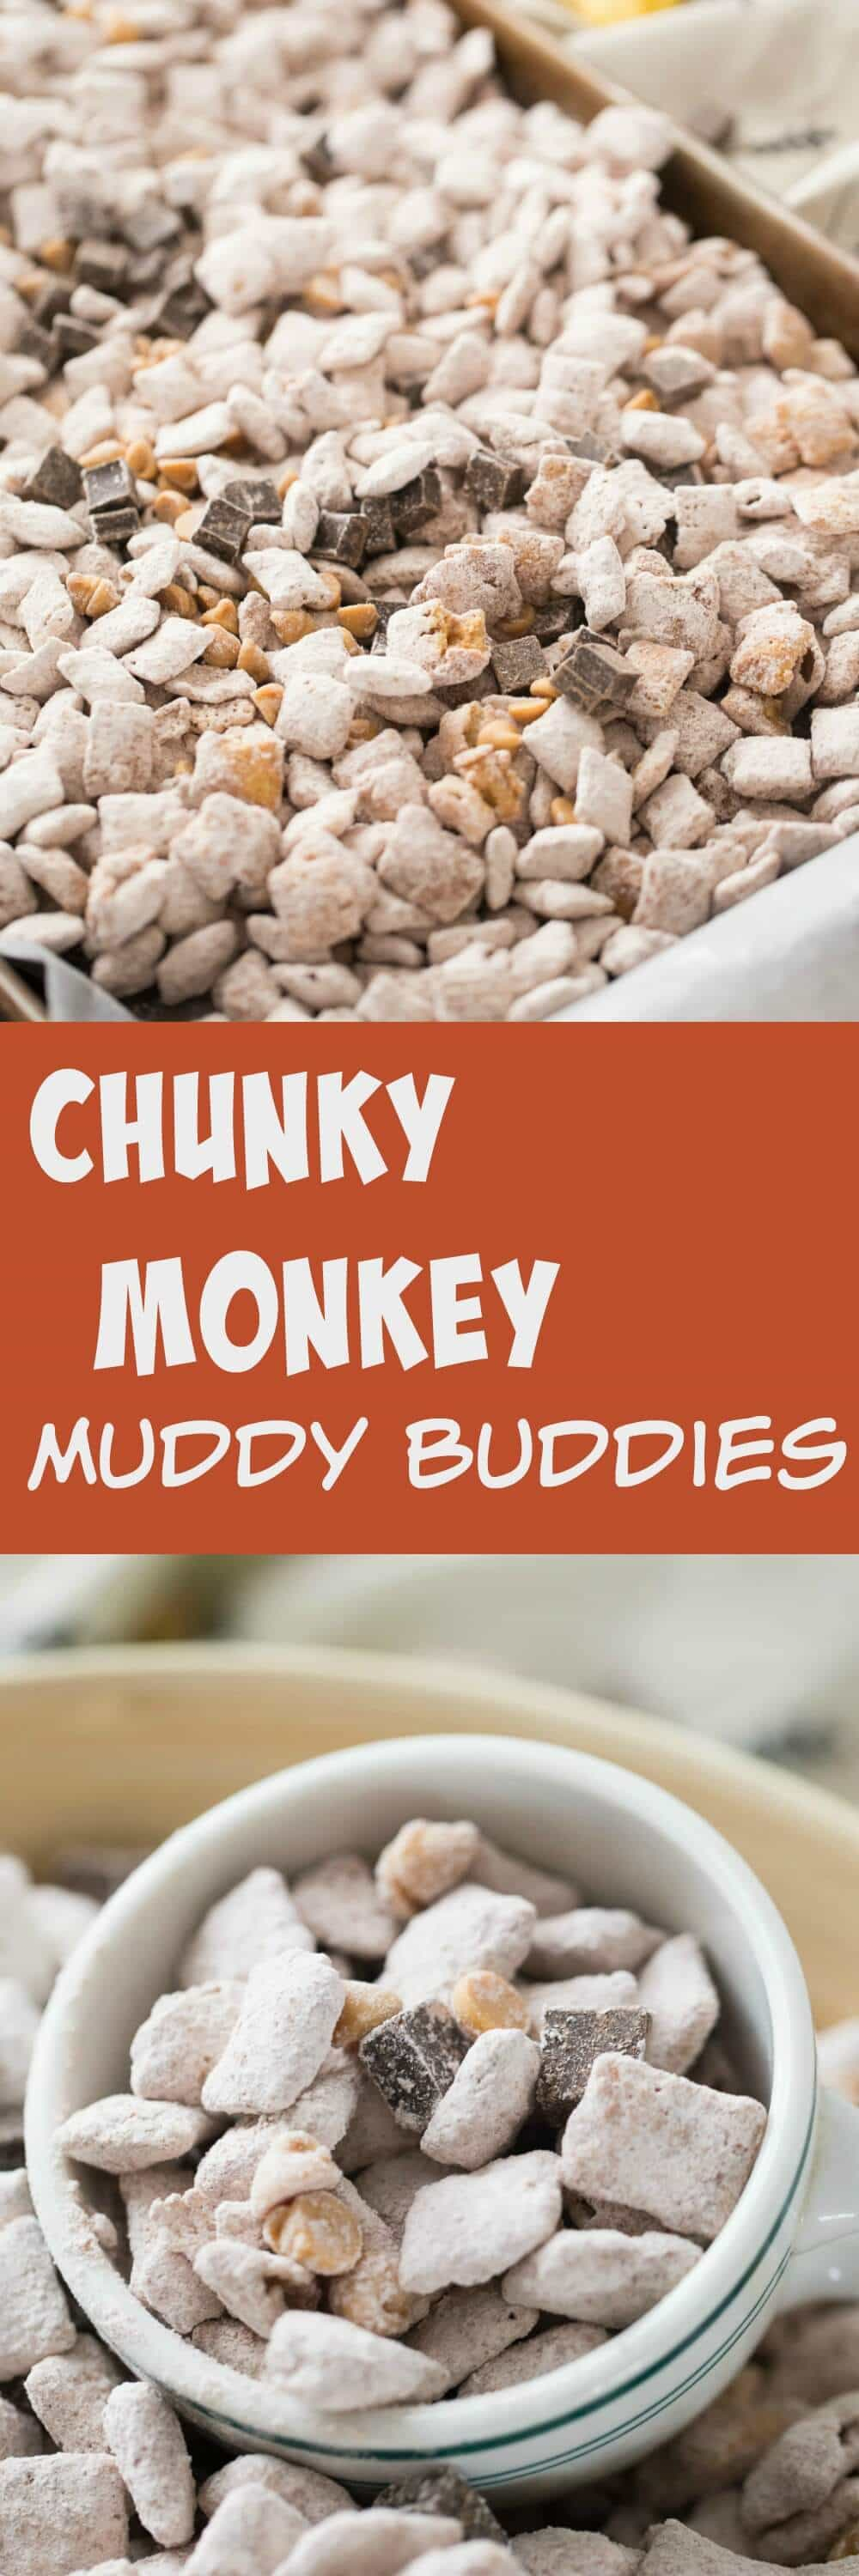 This chunky monkey snack mix is so simple to make; it's a great recipe to make with kids! Peanut butter and chocolate work perfectly in this fun muddy buddy recipe!